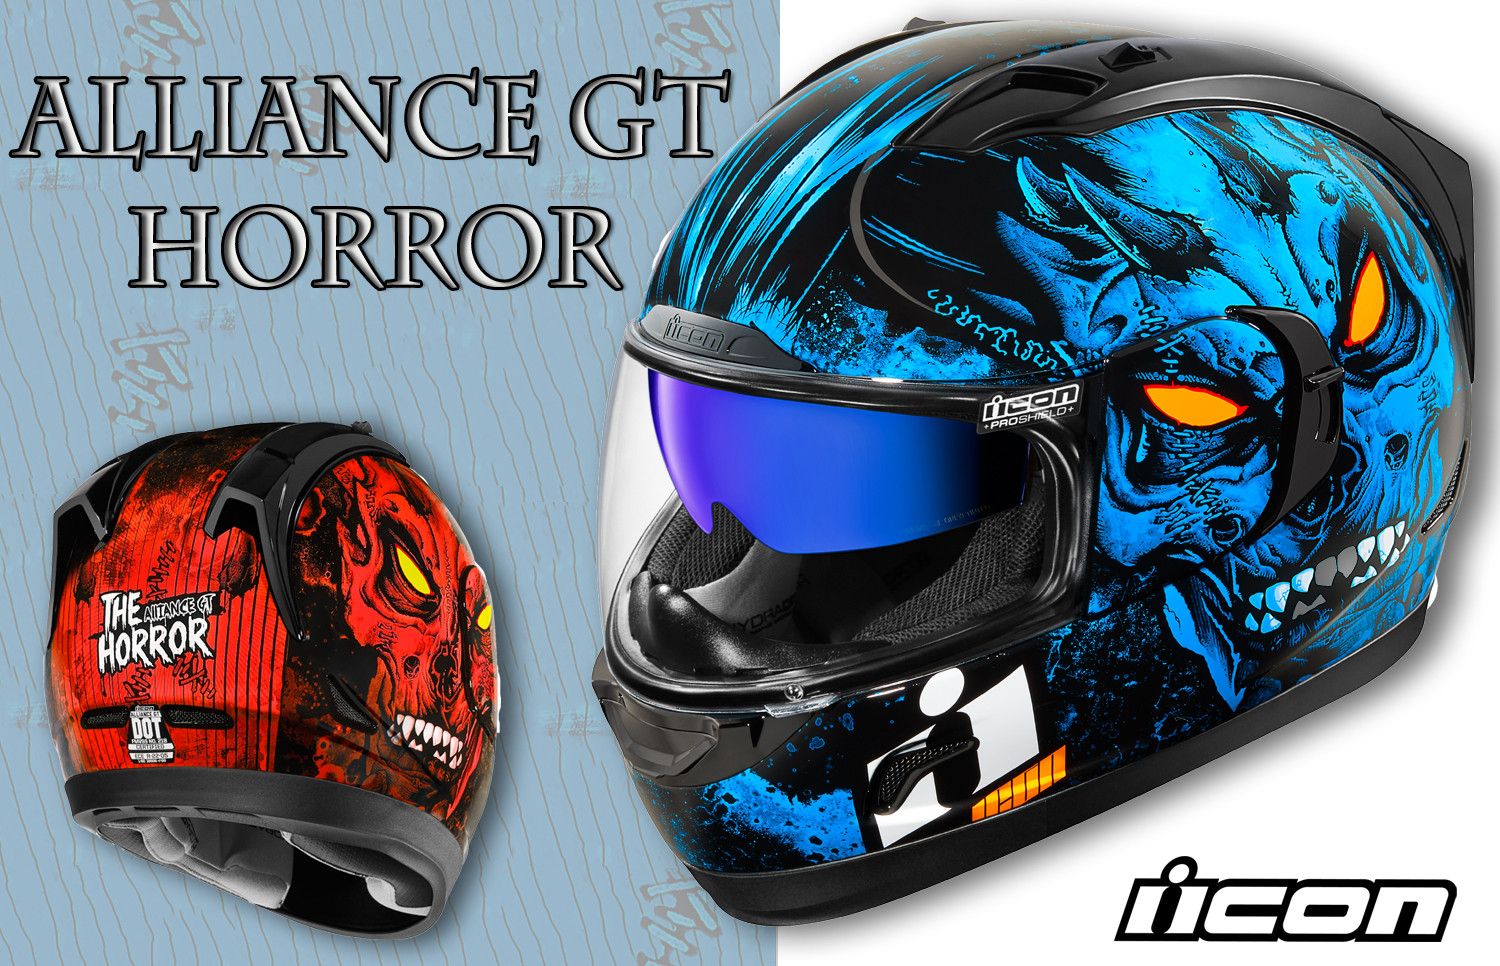 New Alliance GT Horror Helmet from Icon